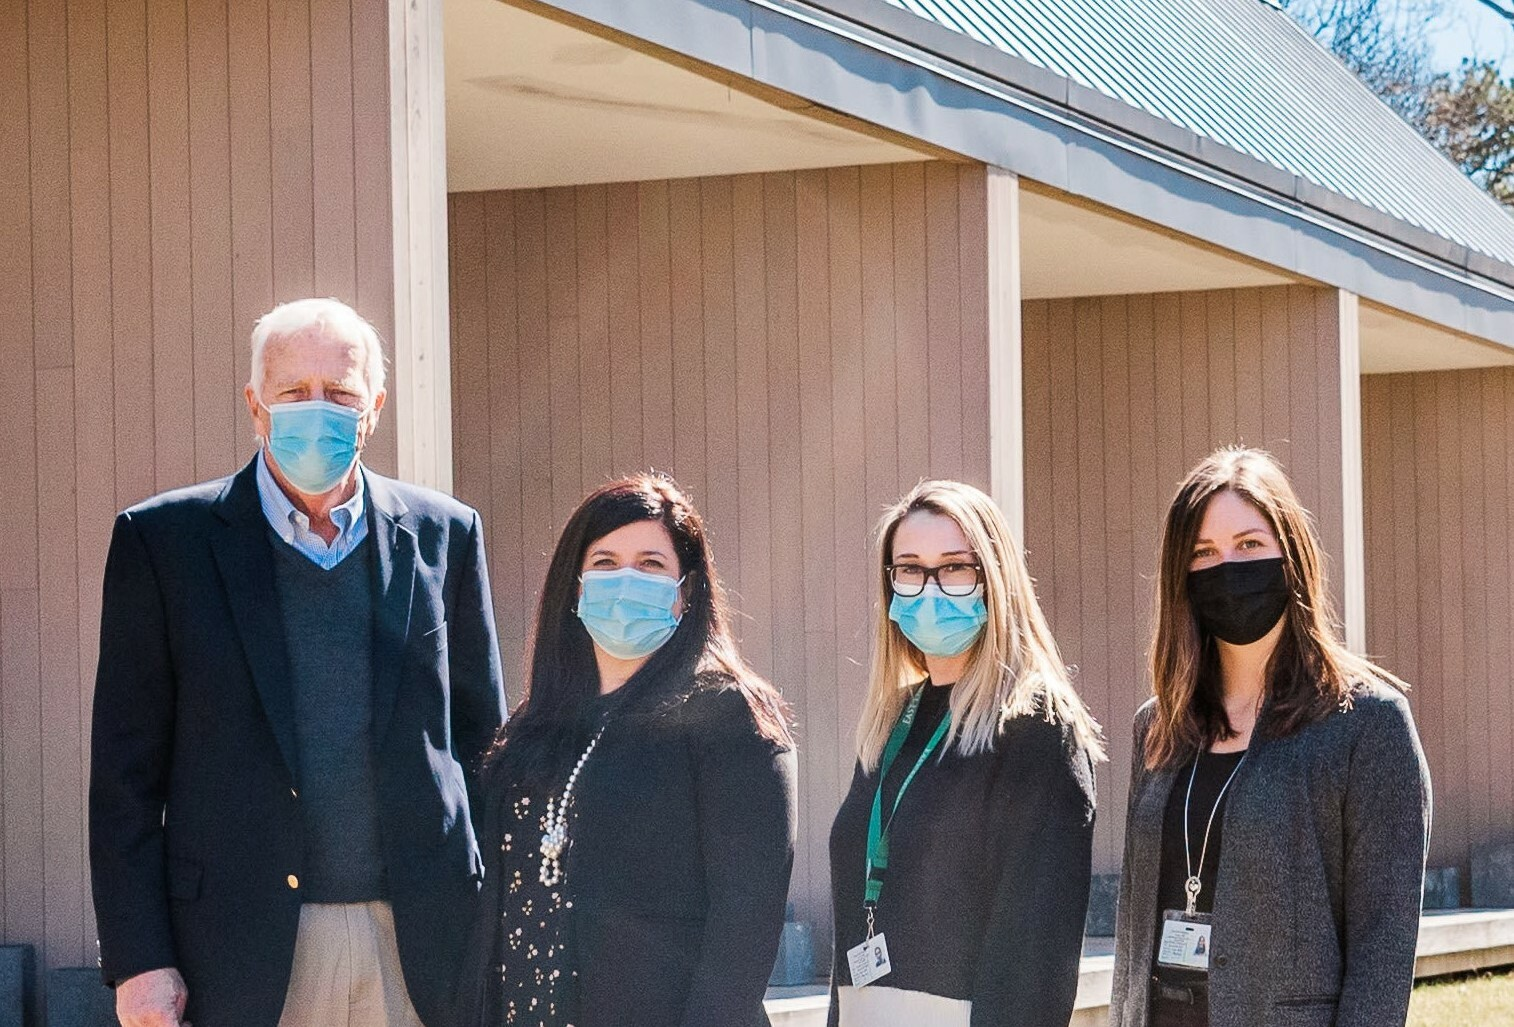 Caitline O'Conner, Kanas Center for Hospice Care Nurse Manager, Peter Halstead, Chairman of the Board of Directors,  Mary Crosby, President & CEO, Nicole LaMariana, Kanas Center for Hospice Care Social Worker